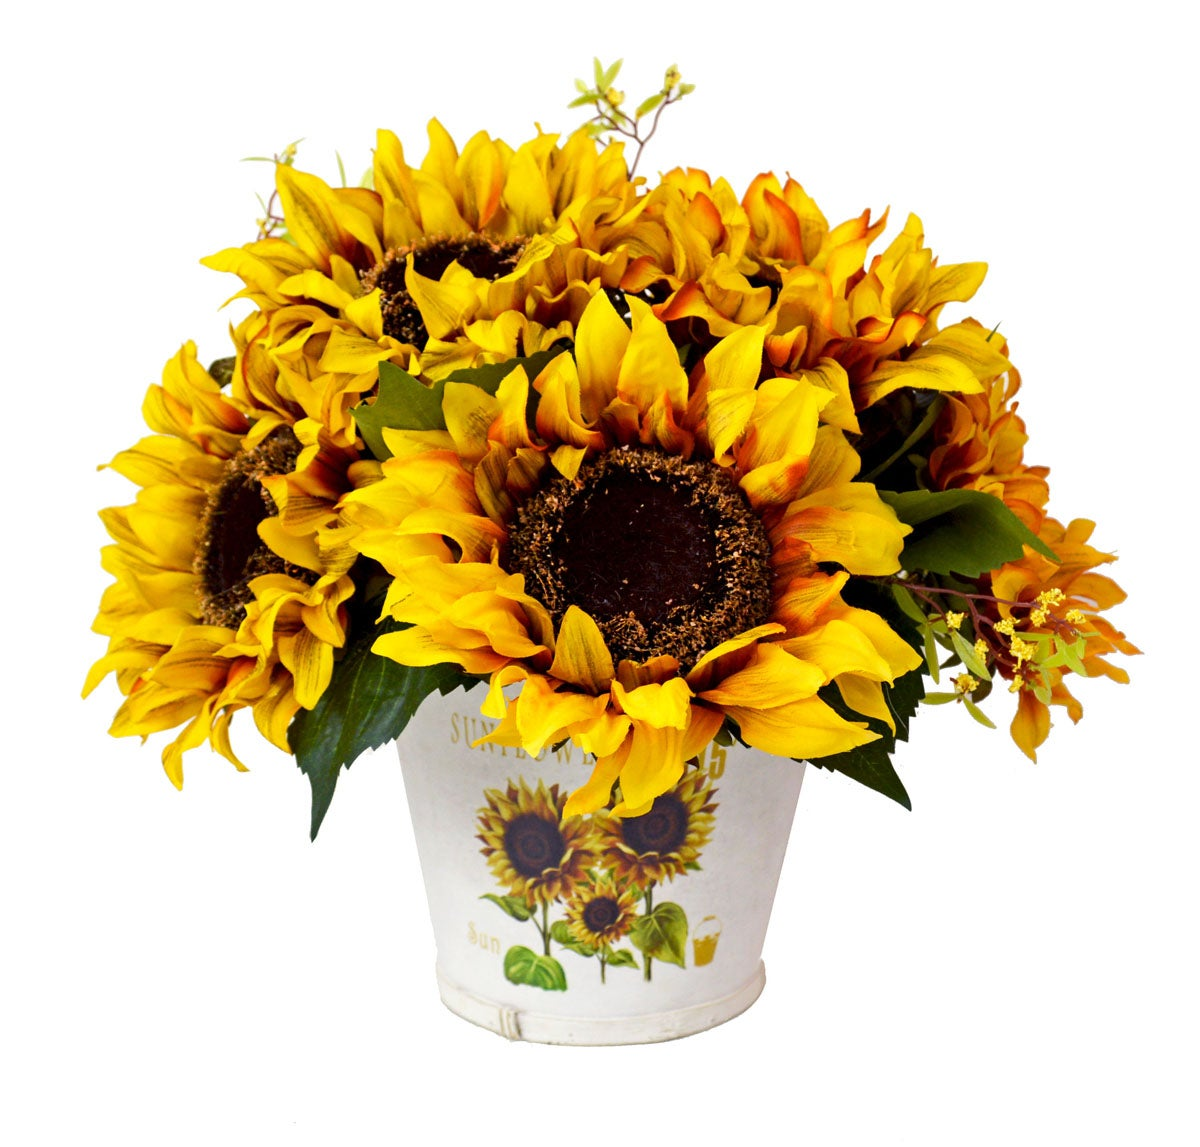 Creative Displays Vintage Golden Sunflower Decoration .